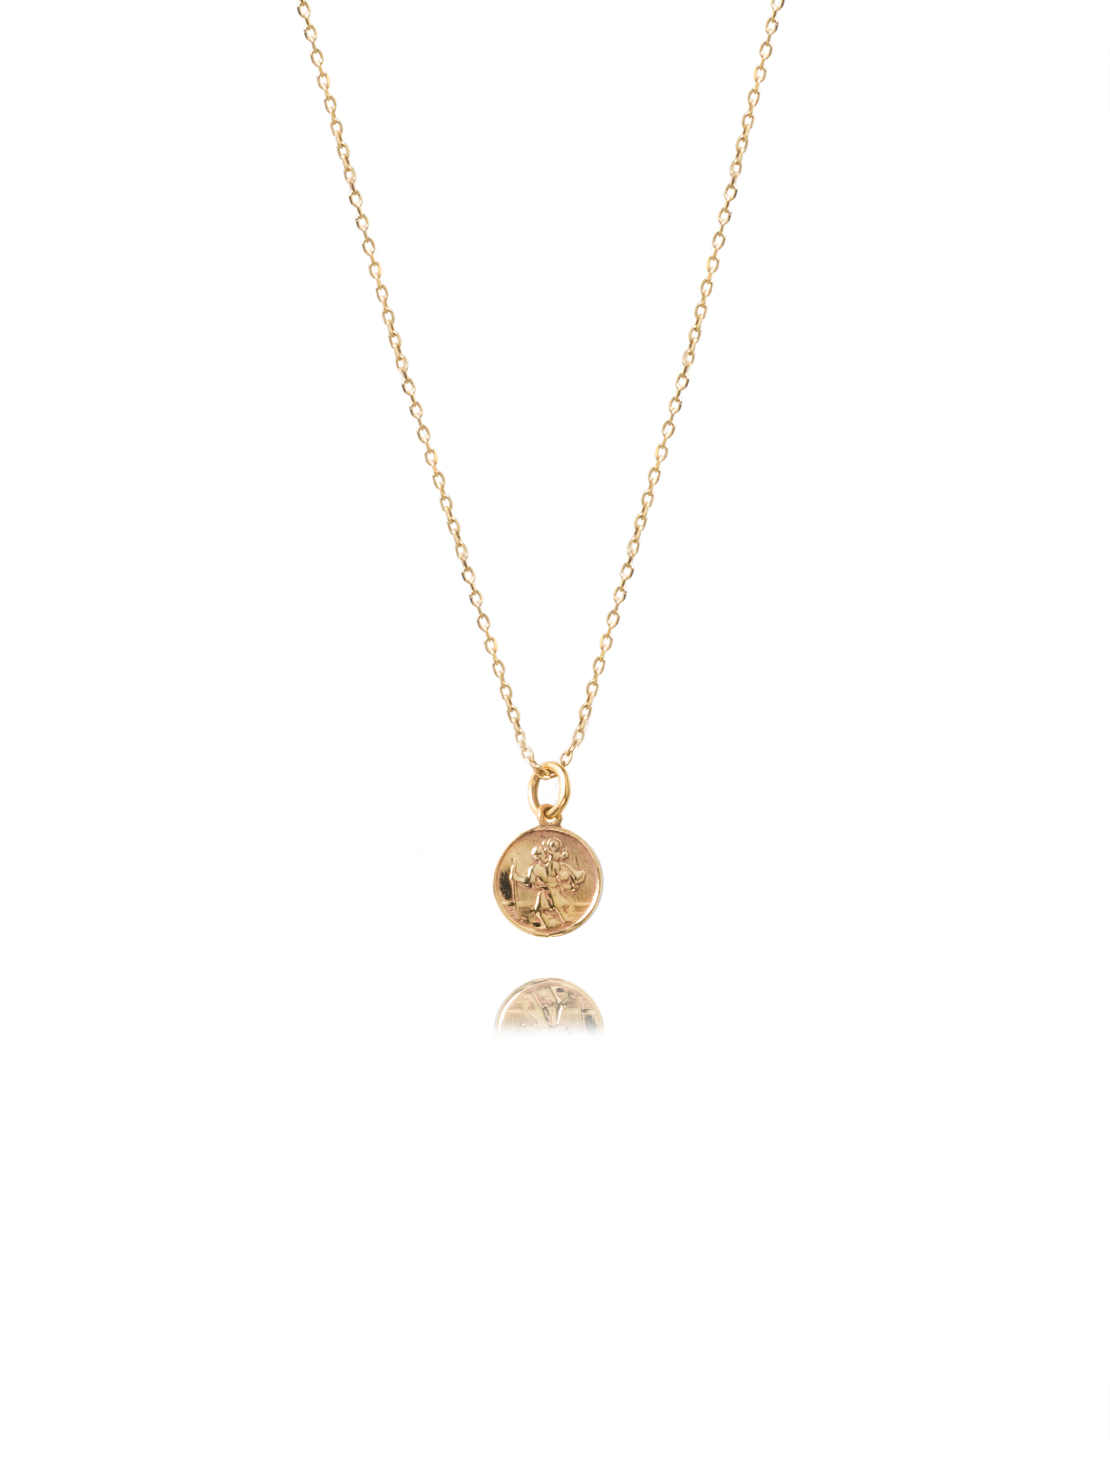 Small Gold St Christopher Necklace